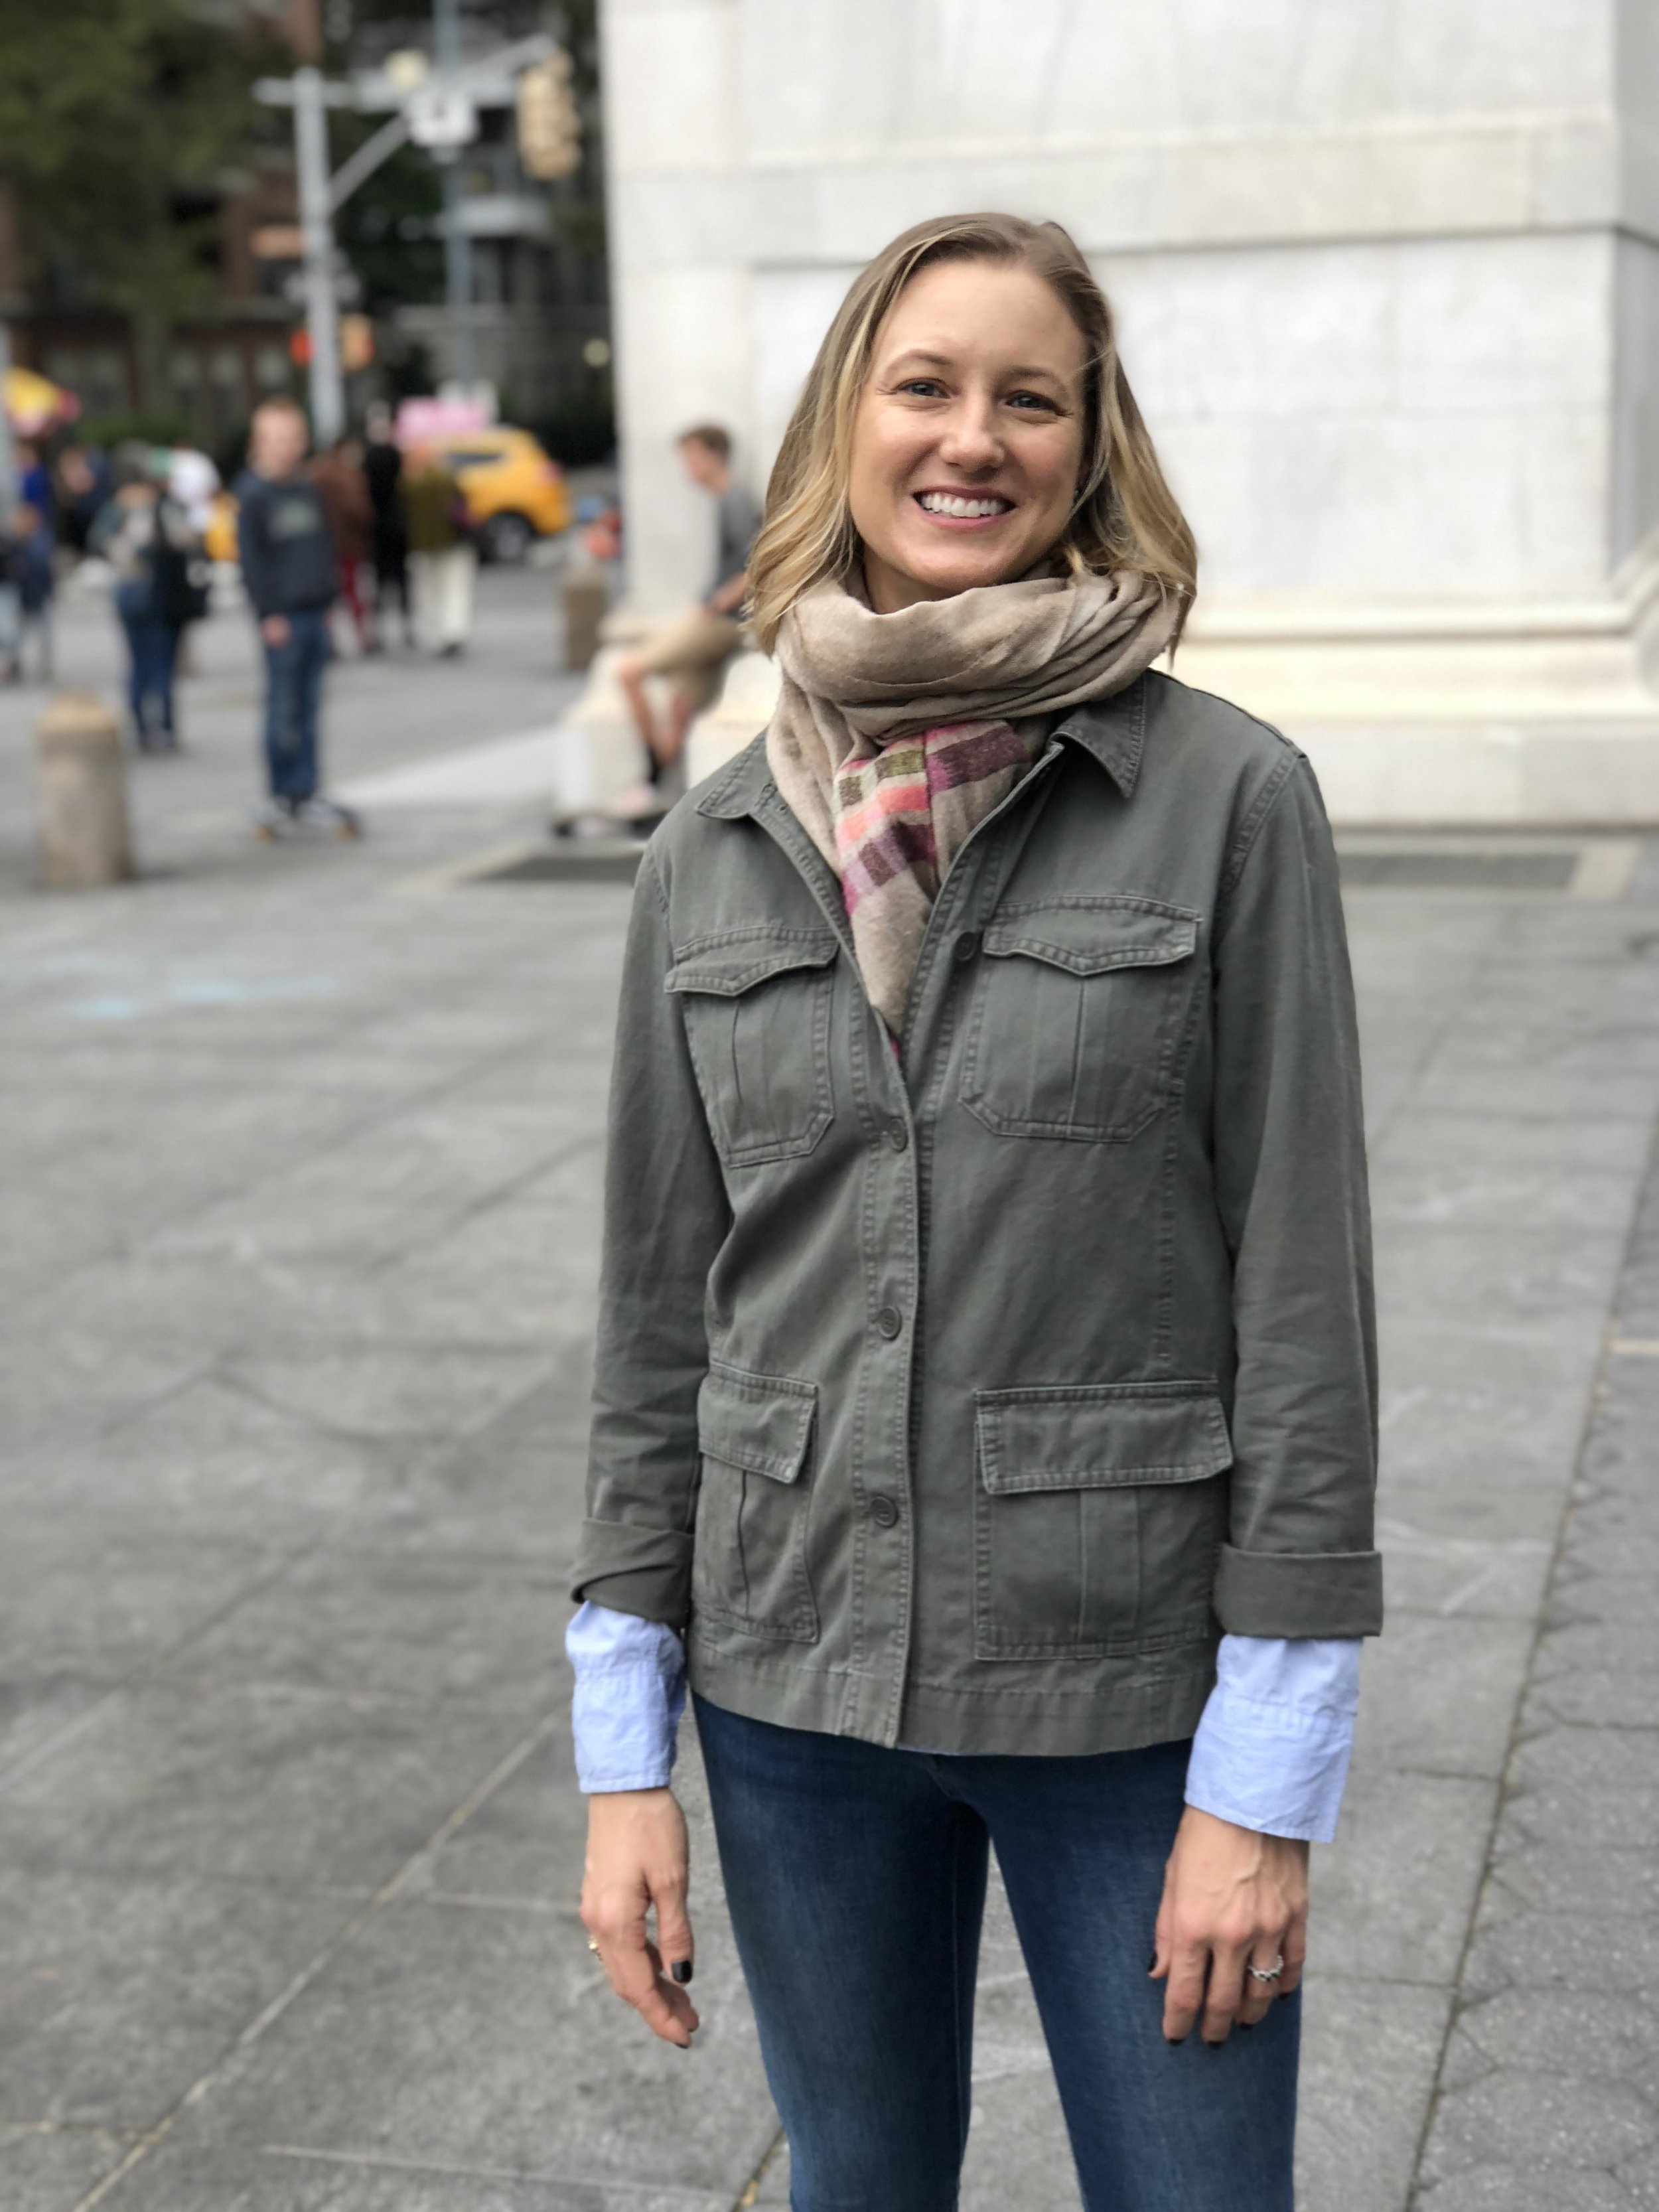 Amy, co-founder of Lucy & Jo, is wearing some incredible brands to celebrate: Jacket: @ mewe_clothing_ , Shirt: @ swapsociety , Scarf: @ bloomandgive , Jeans: @ dl1961denim .